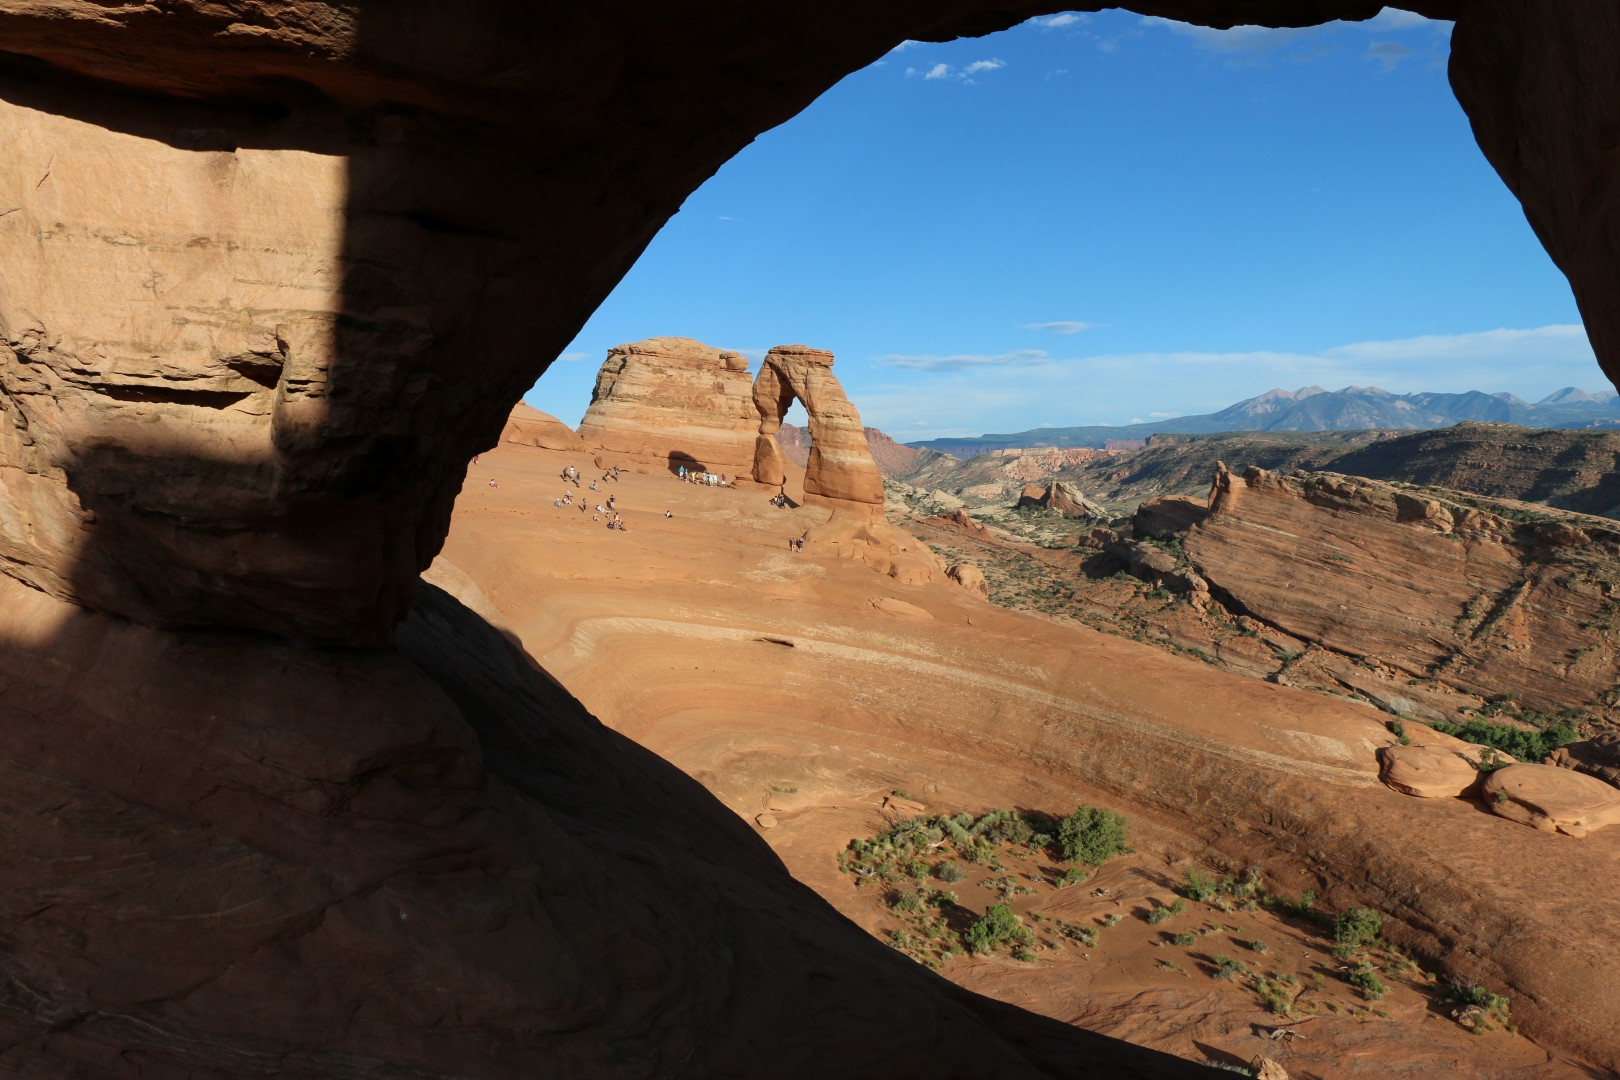 One last glimpse of Delicate Arch